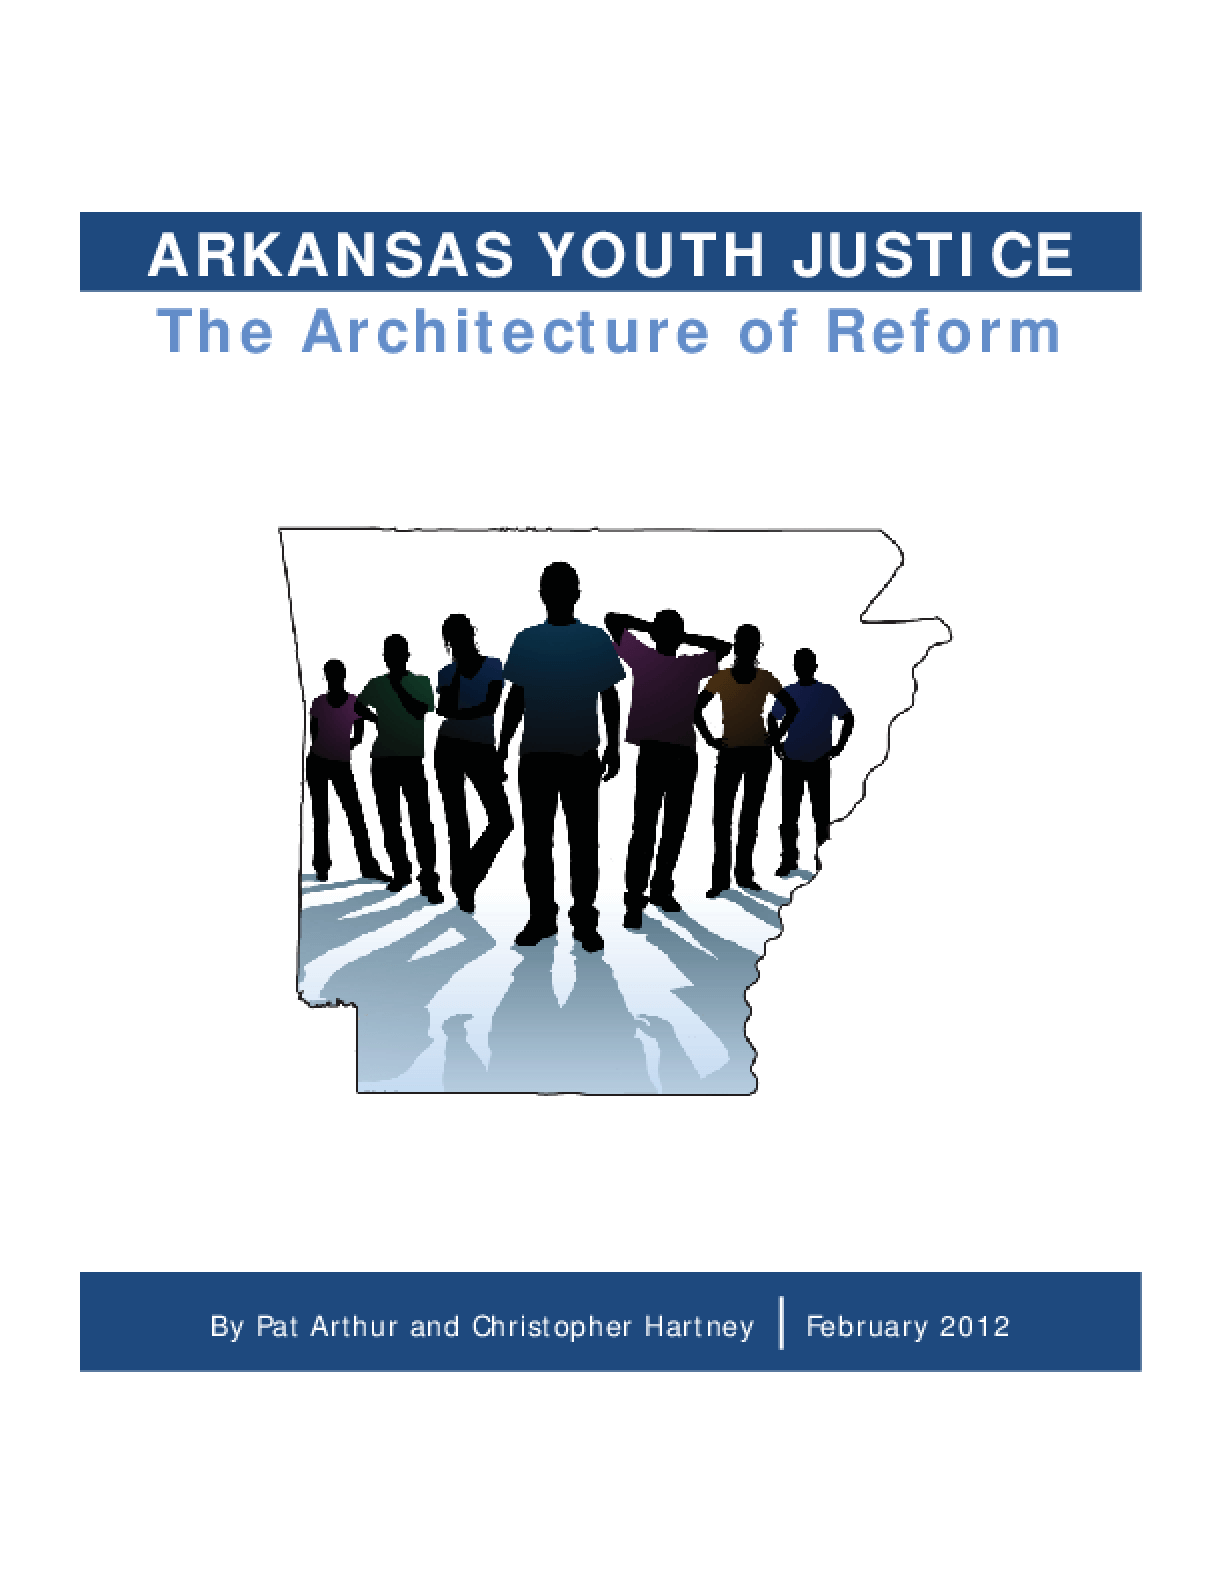 Arkansas Youth Justice: The Architecture of Reform